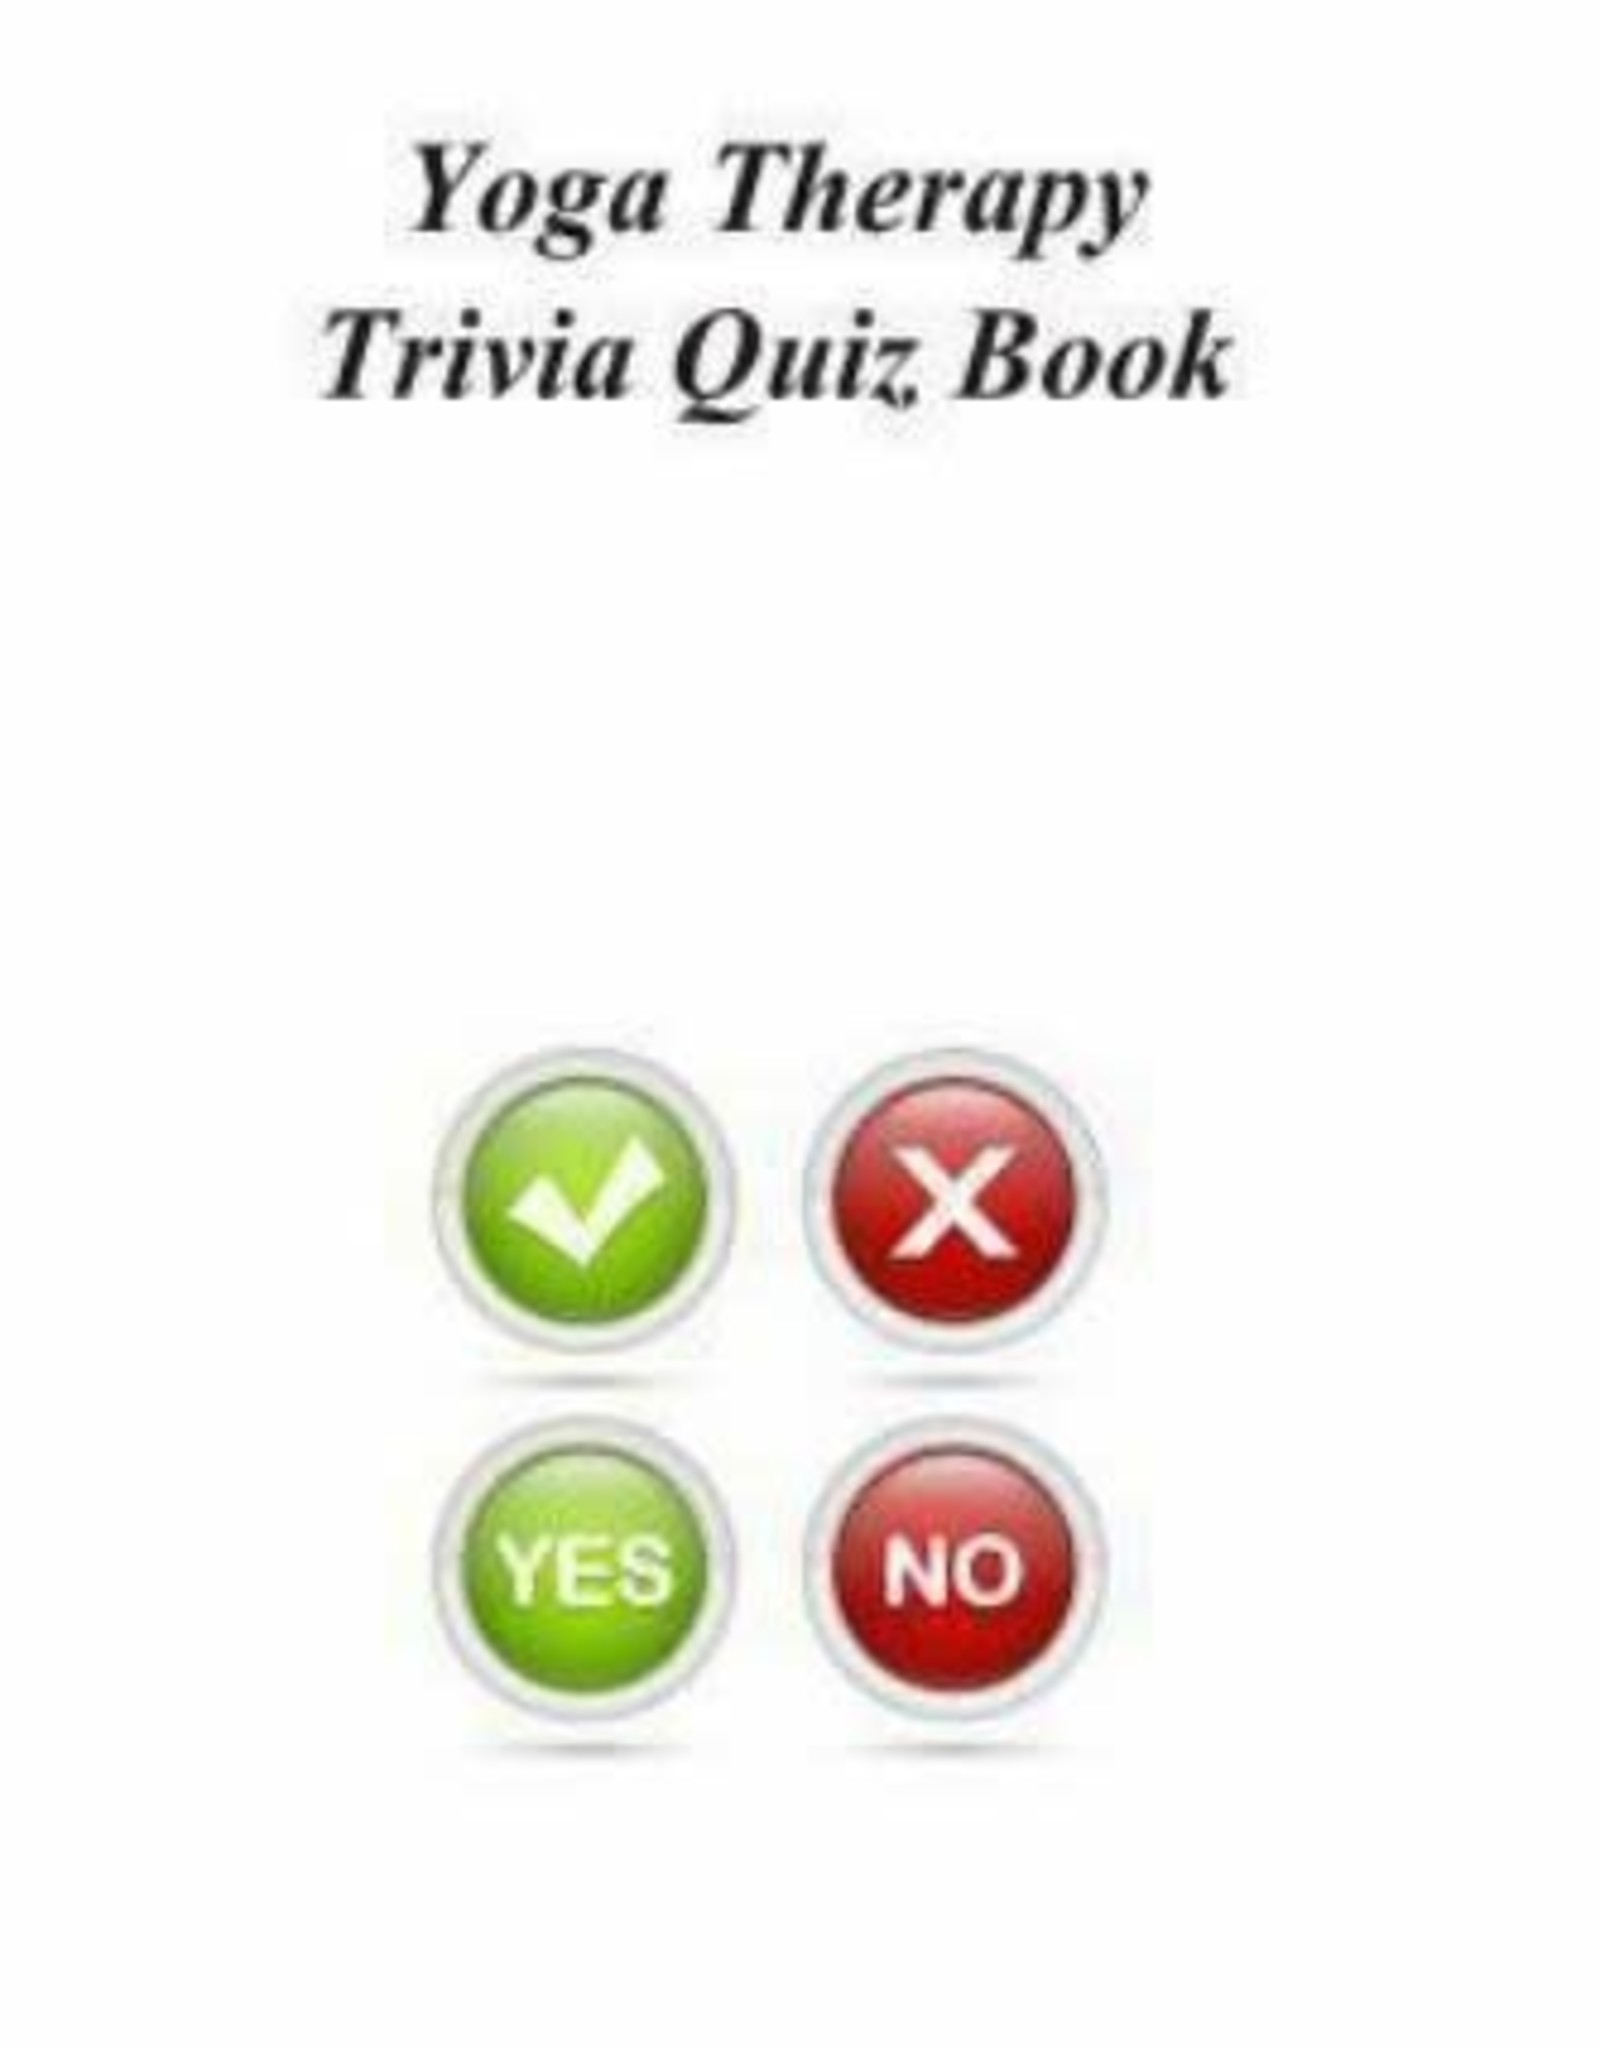 Ingram Yoga Therapy Trivia Quiz Book